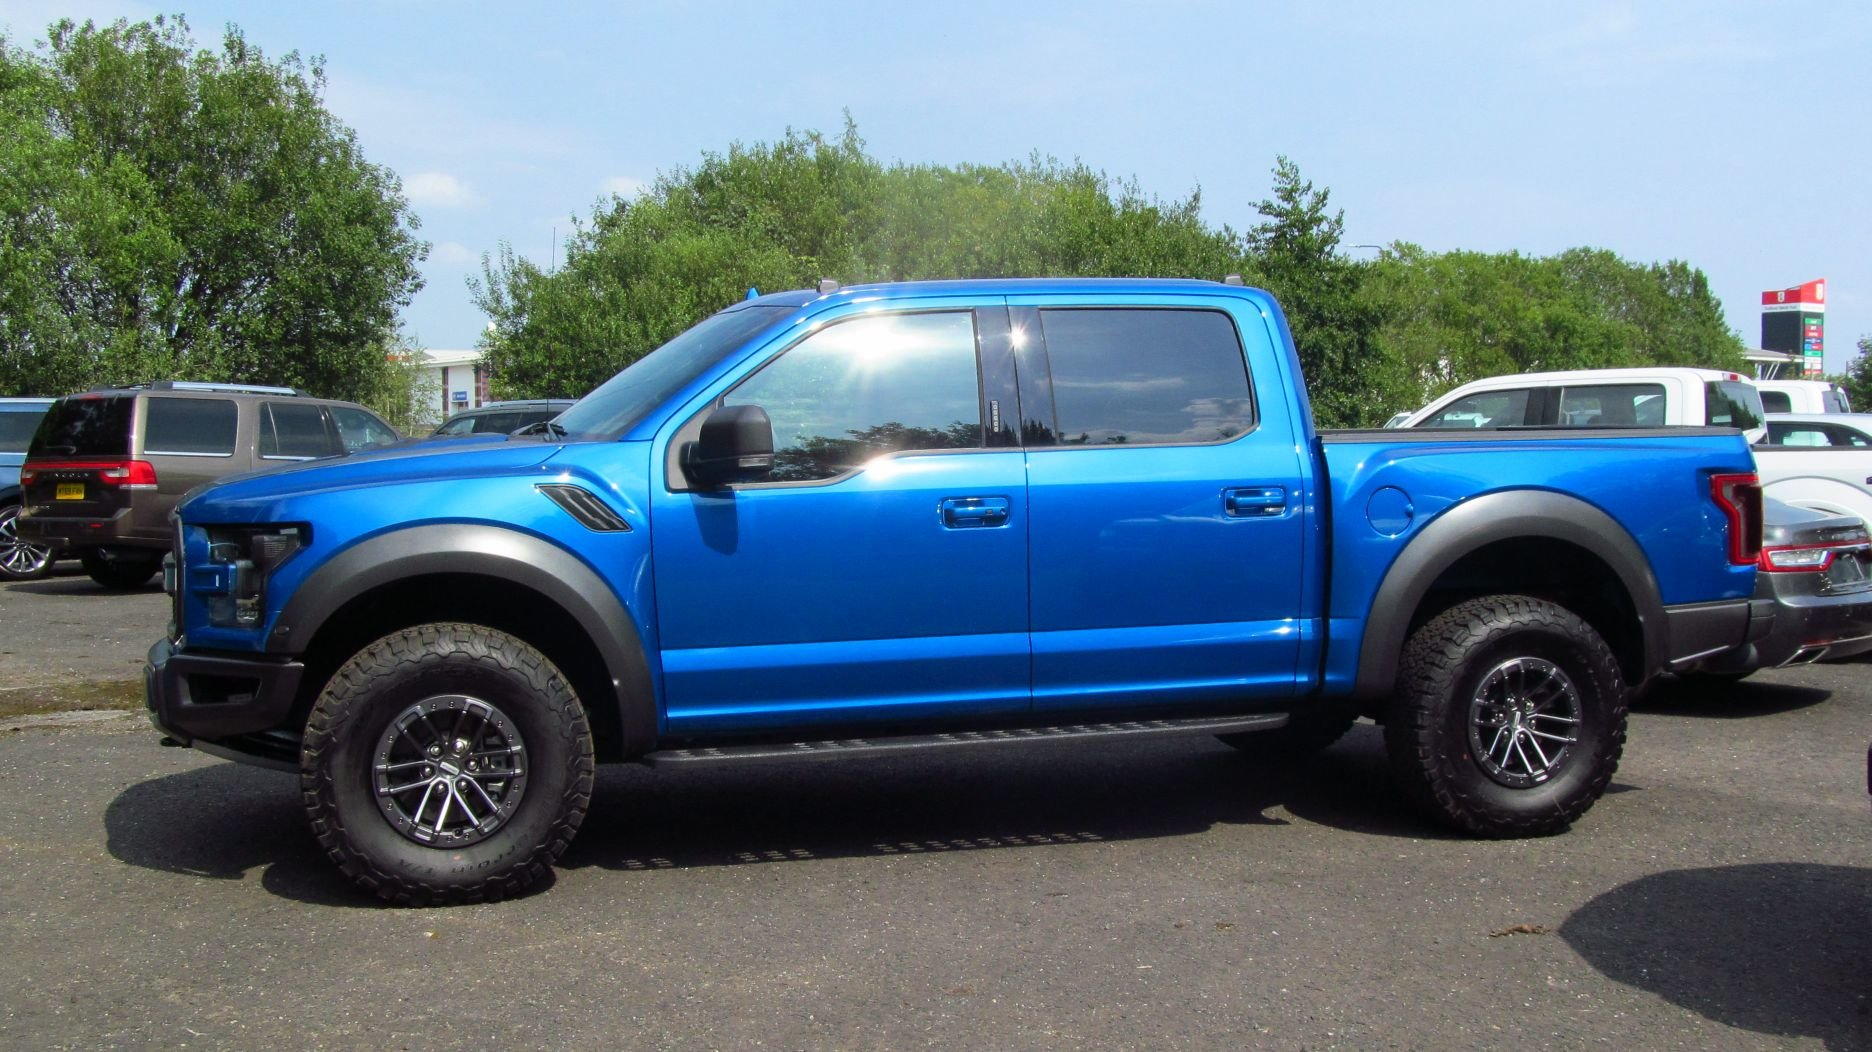 2019 NEW September reg Ford F-150 RAPTOR For Sale (picture 2 of 6)